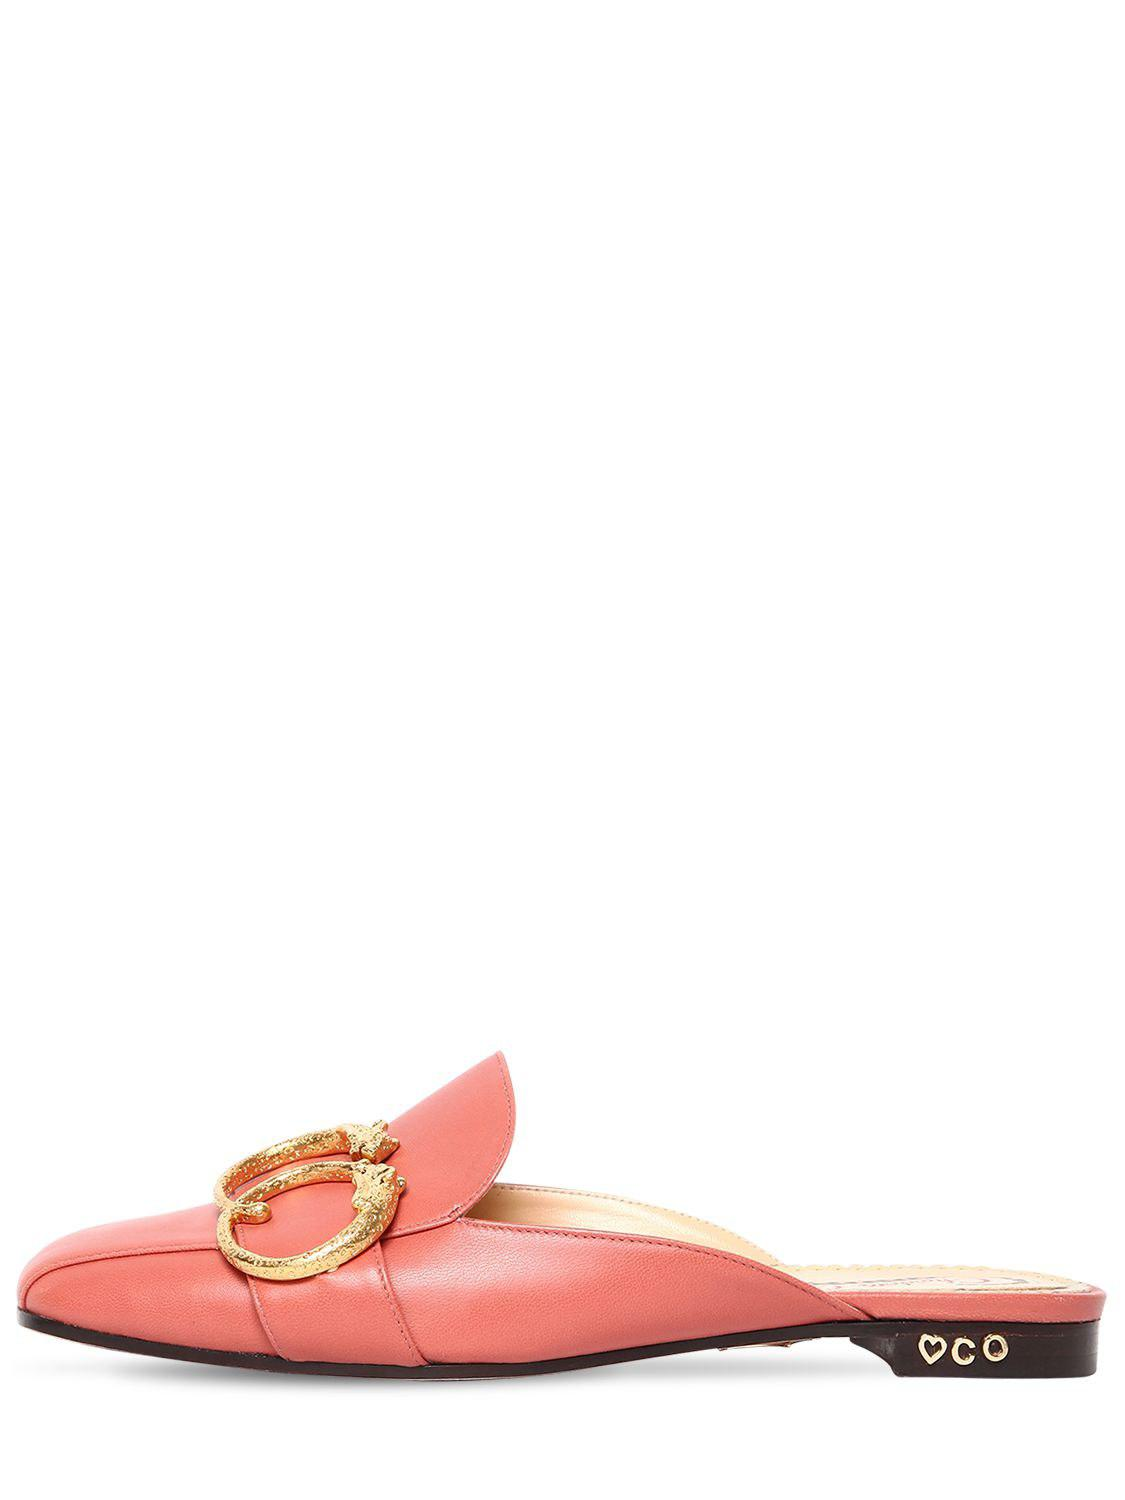 Charlotte Olympia 10MM LEATHER MULES W/ BUCKLE tn5gC5VX